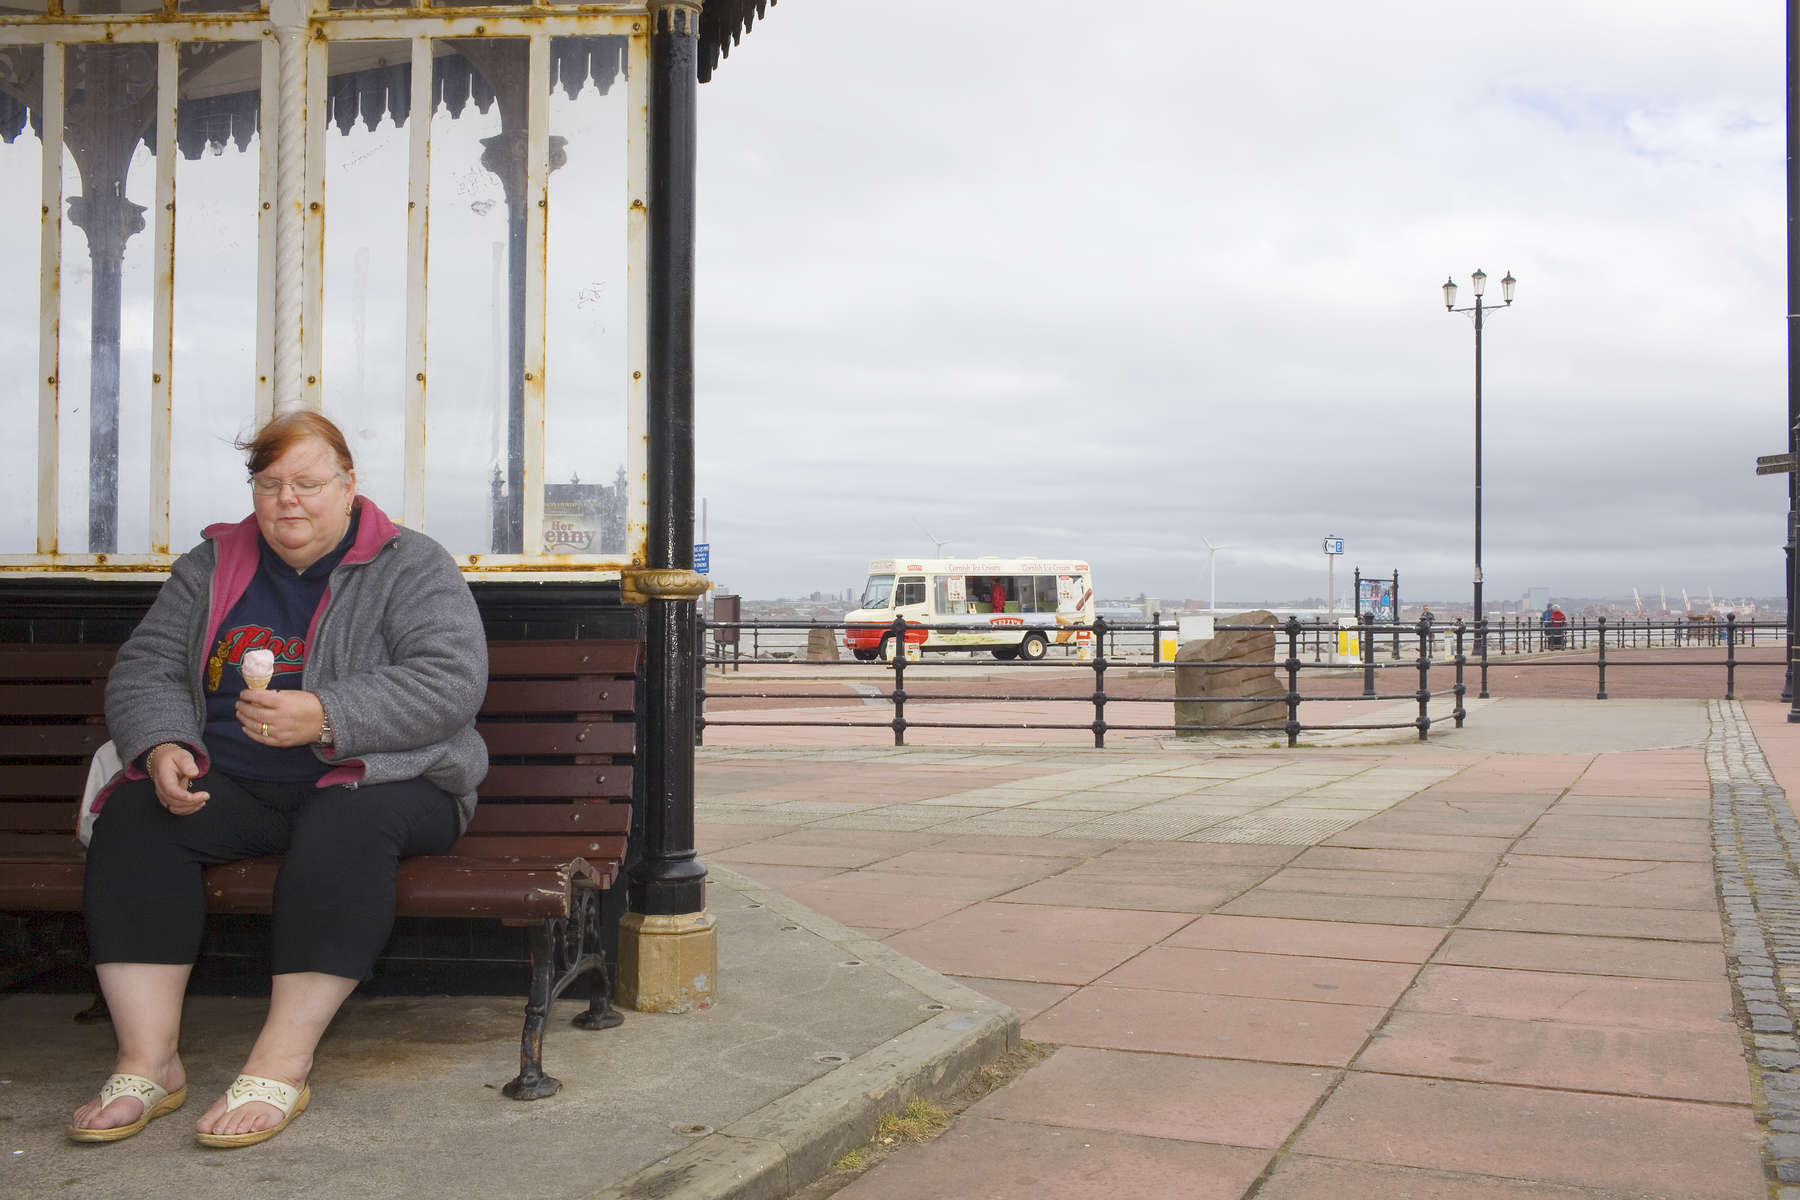 A woman sat with an ice cream in a weather shelter on Marine Promenade.In 1986, world famous photographer Martin Parr published his book 'The Last Resort,' a set of photographs taken over three seasons 1983-85 in the Liverpool suburb of New Brighton. 25 years later, photographer and Parr fan, Peter Dench, went on a Bank Holiday pilgrimage to New Brighton to walk in Parr's footsteps and document what has changed or remained the same in the seaside town.